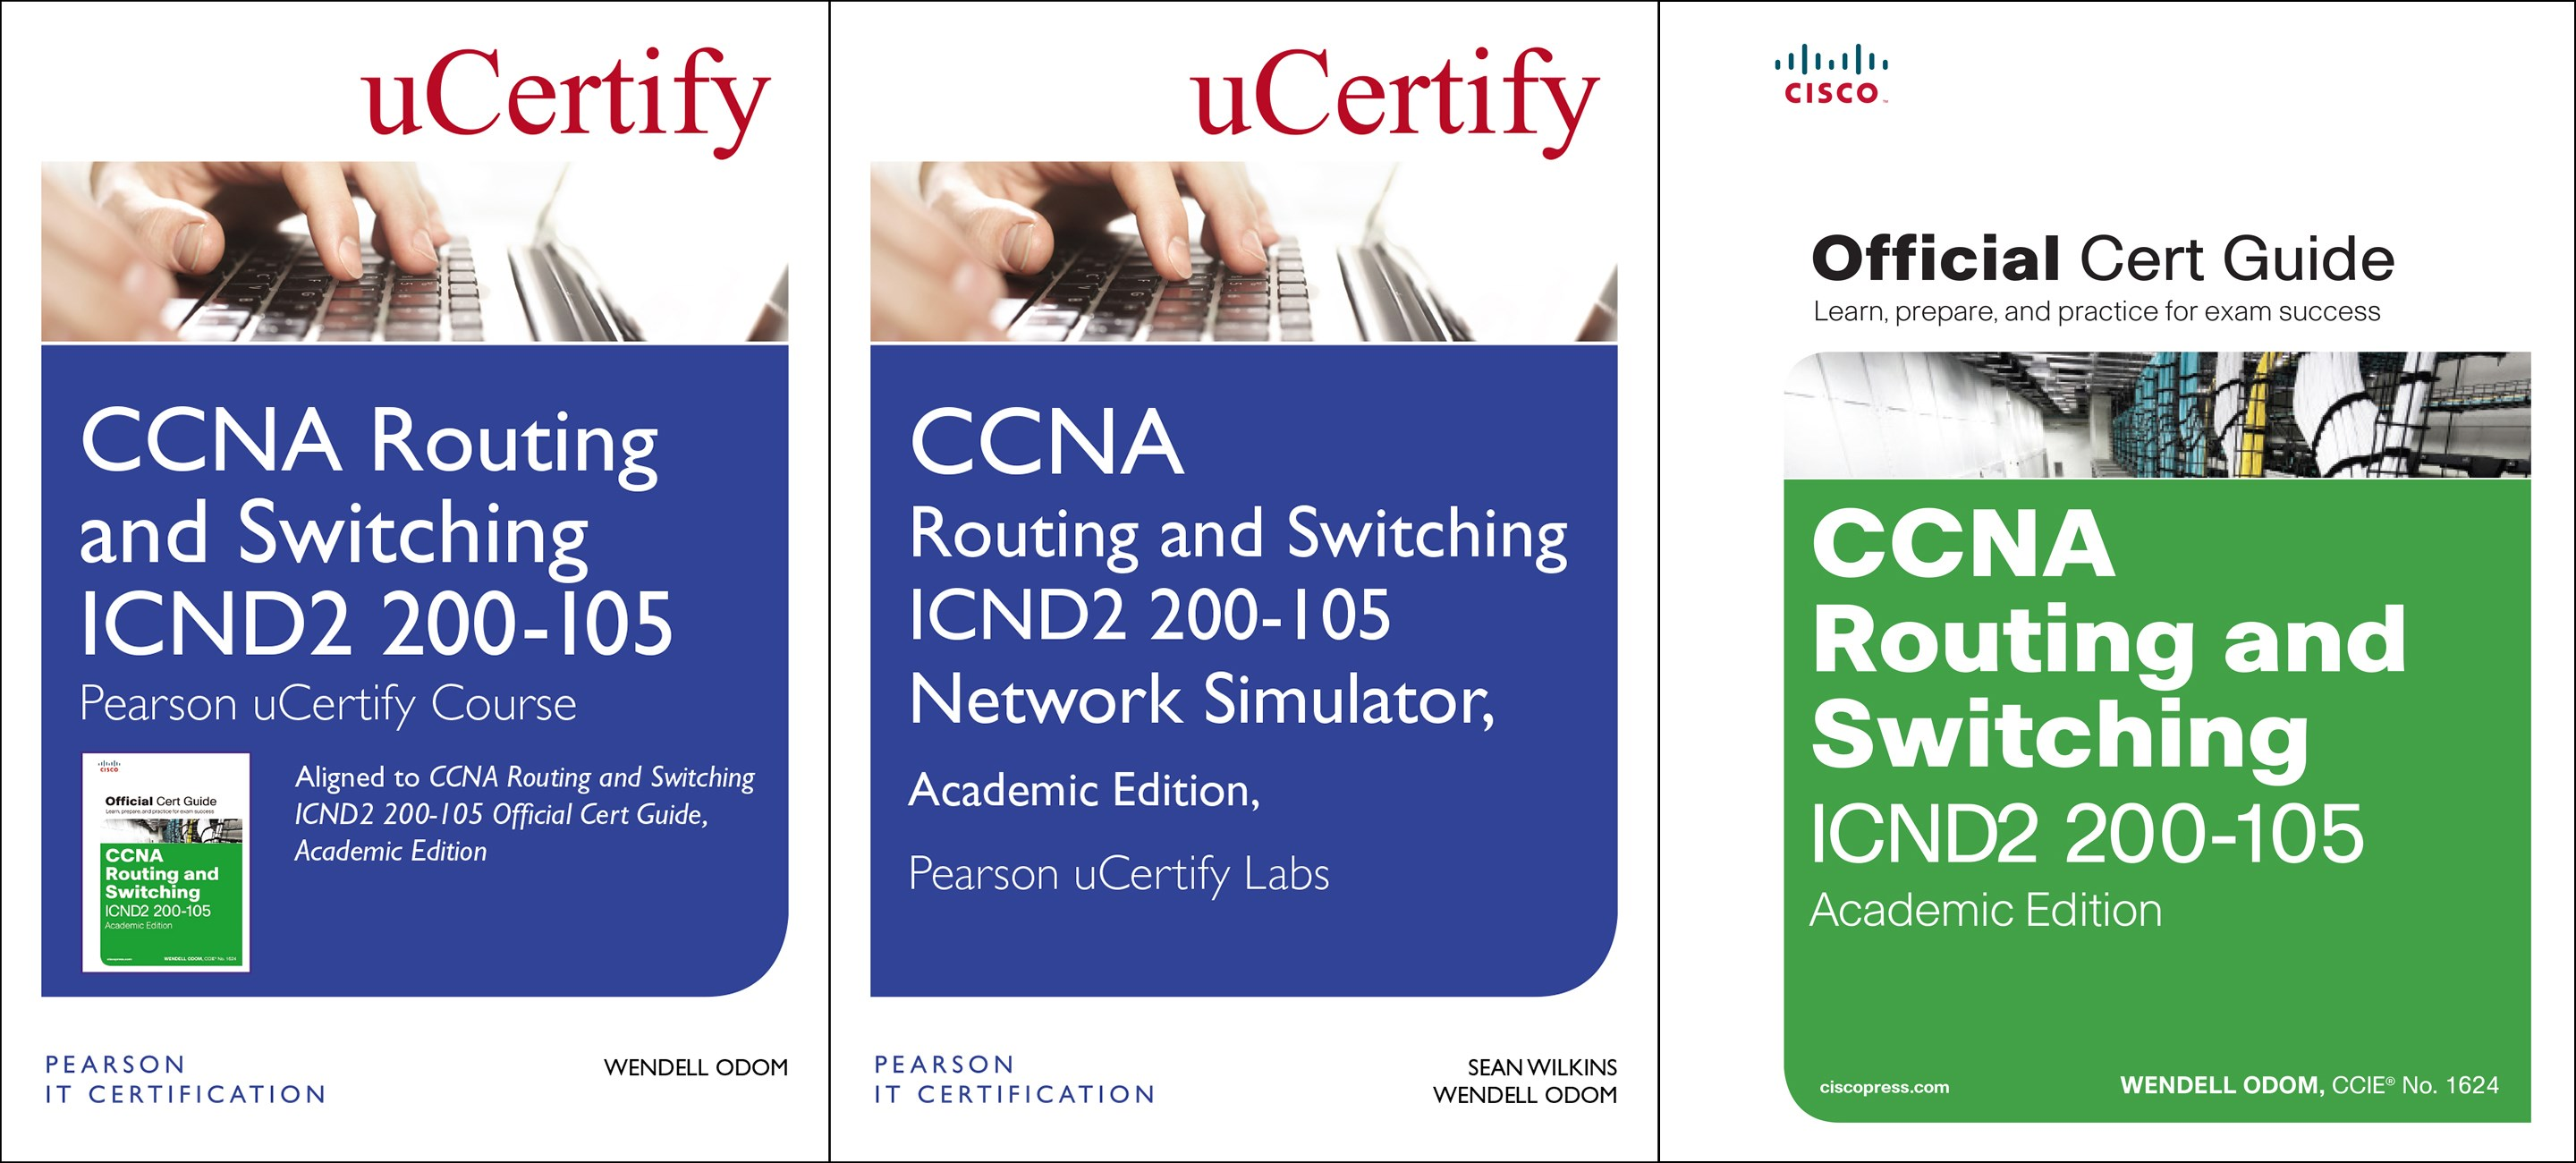 ccna routing and switching practice tests pdf